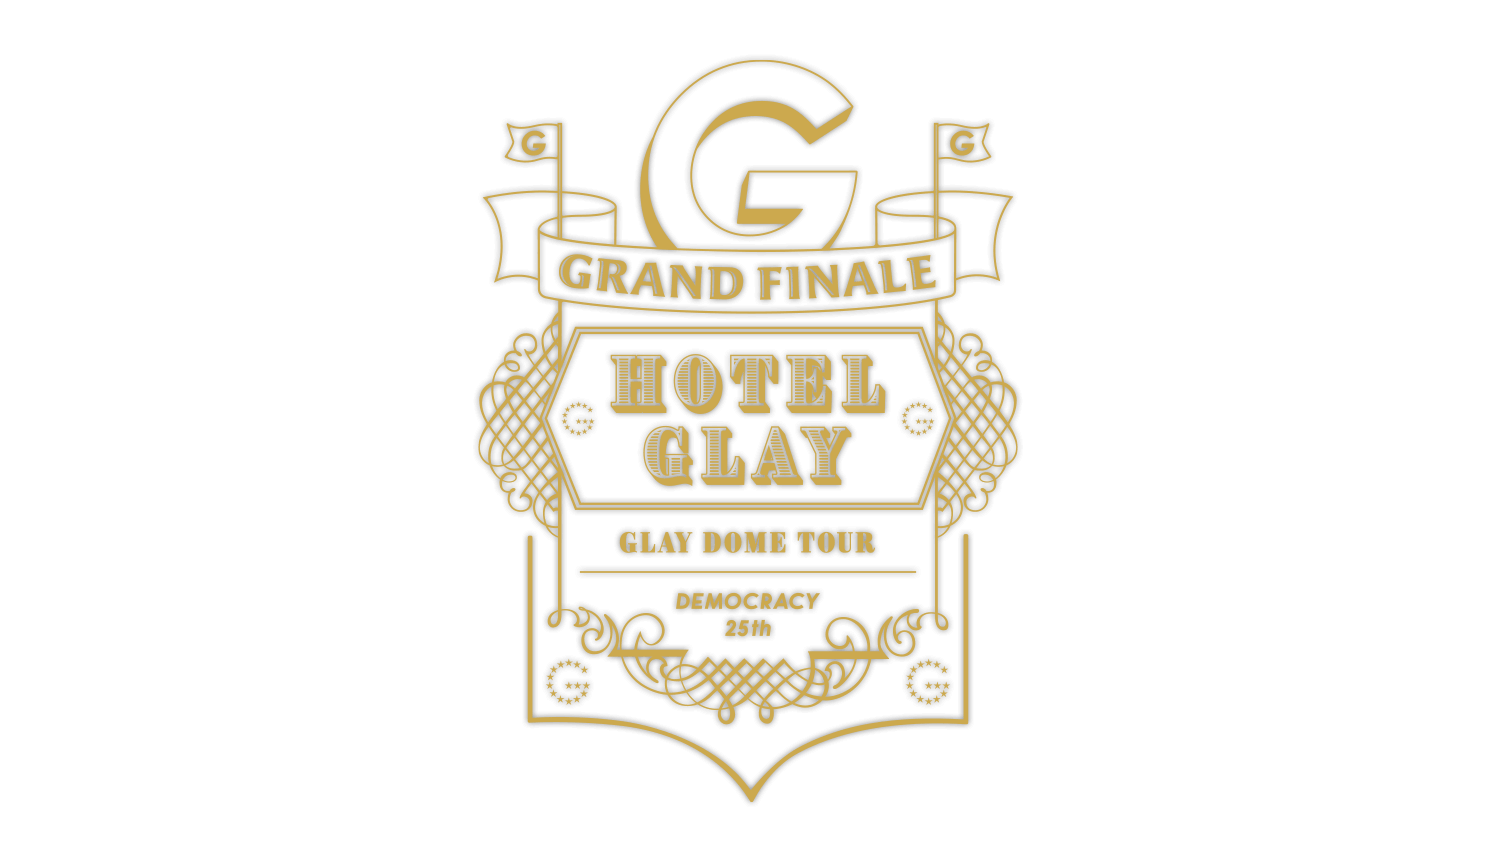 HOTEL GLAY GRAND FINALE 2020 OFFICIAL GOODS